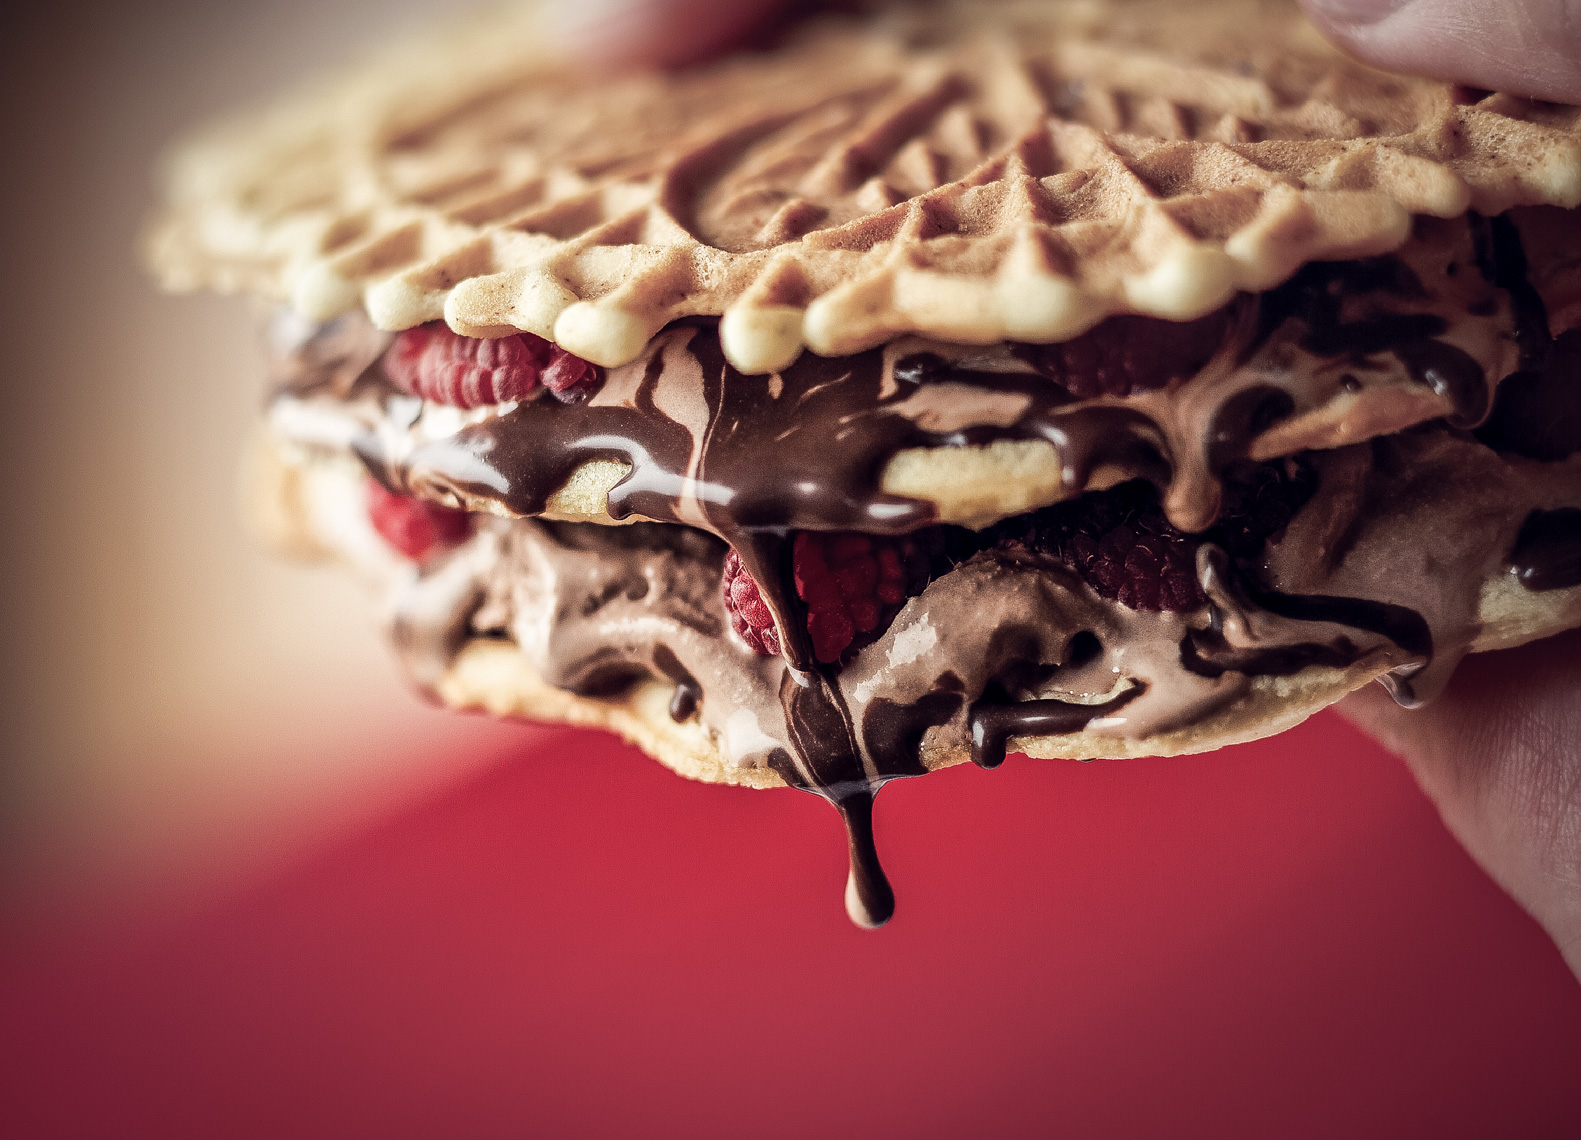 dripping chocolate waffle sandwich with raspberries